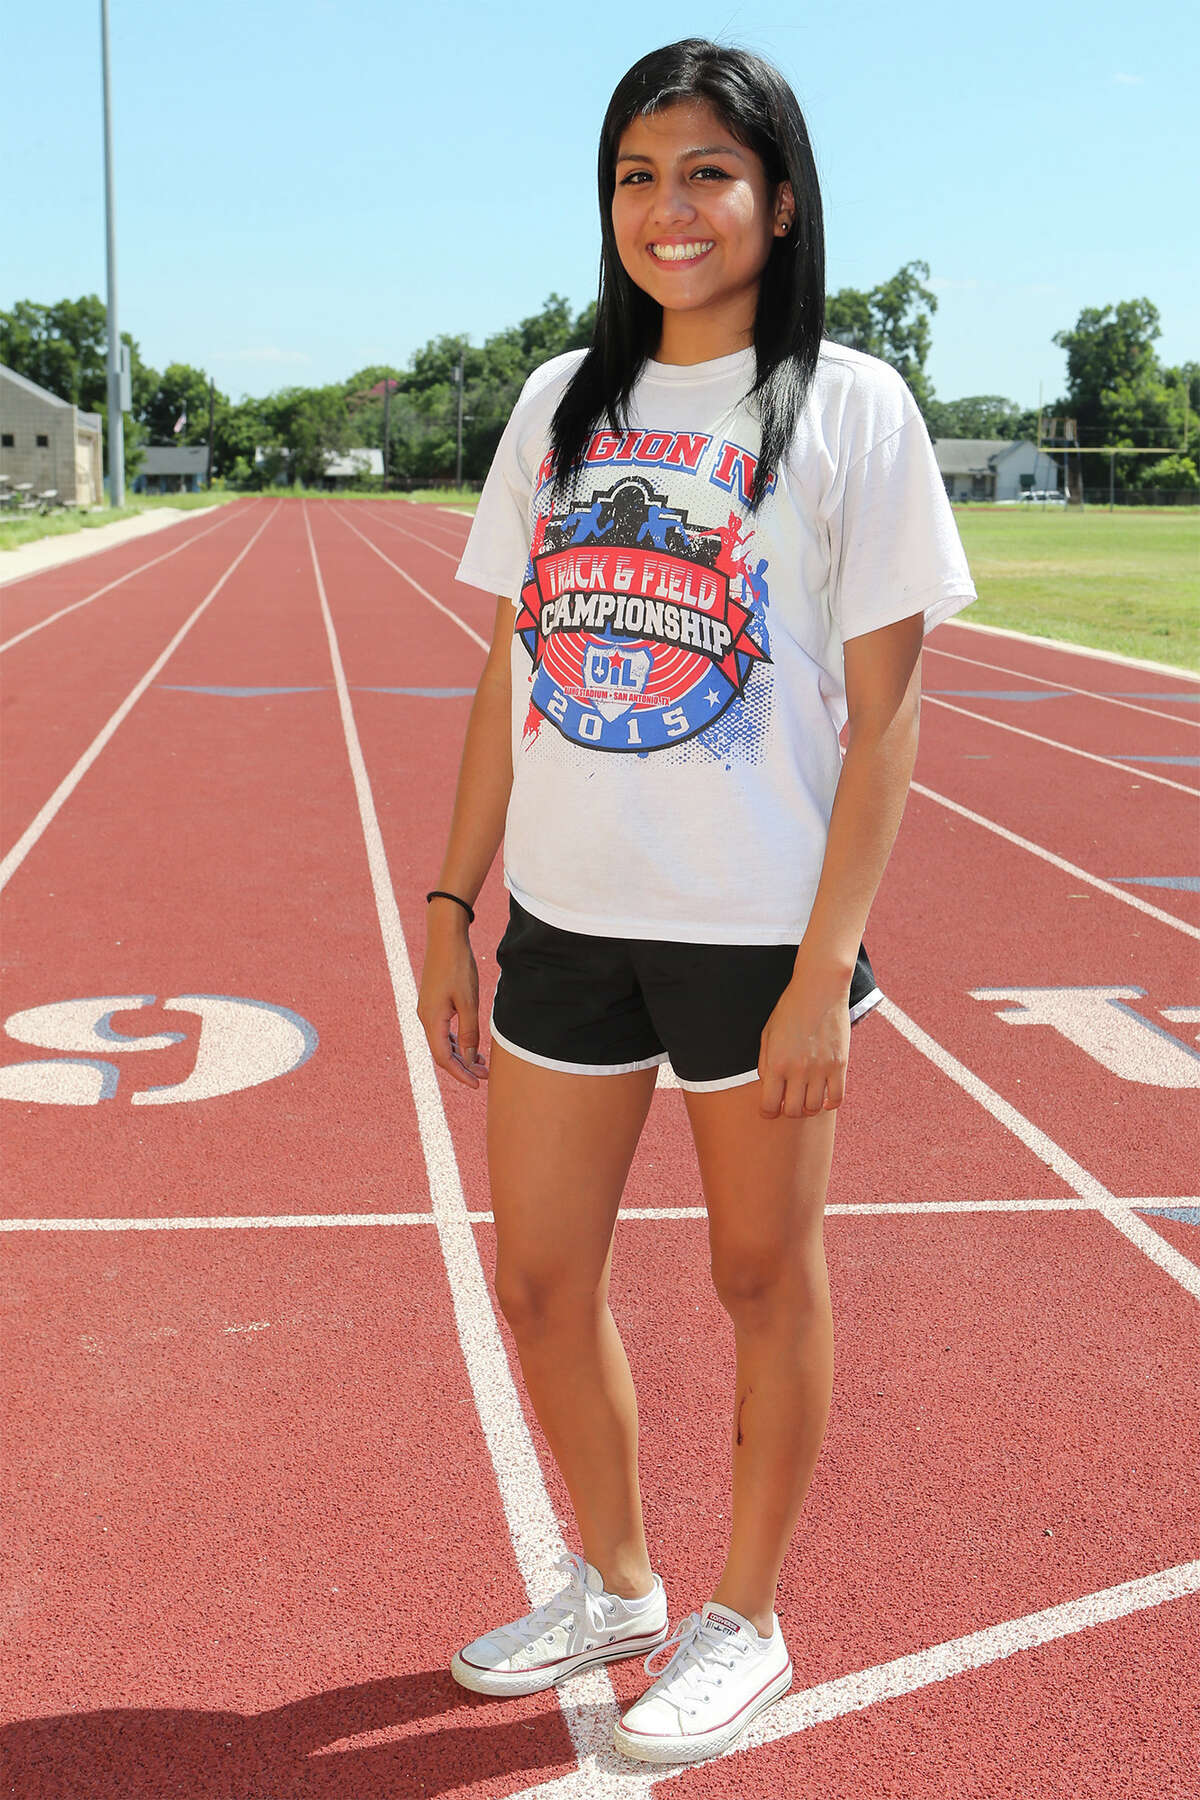 Lanier's Jovana Espinoza will compete in the 17-18 years girls 1,500- and 3,000-meter runs at the AAU Junior Olympics in Norfolk, Virginia.